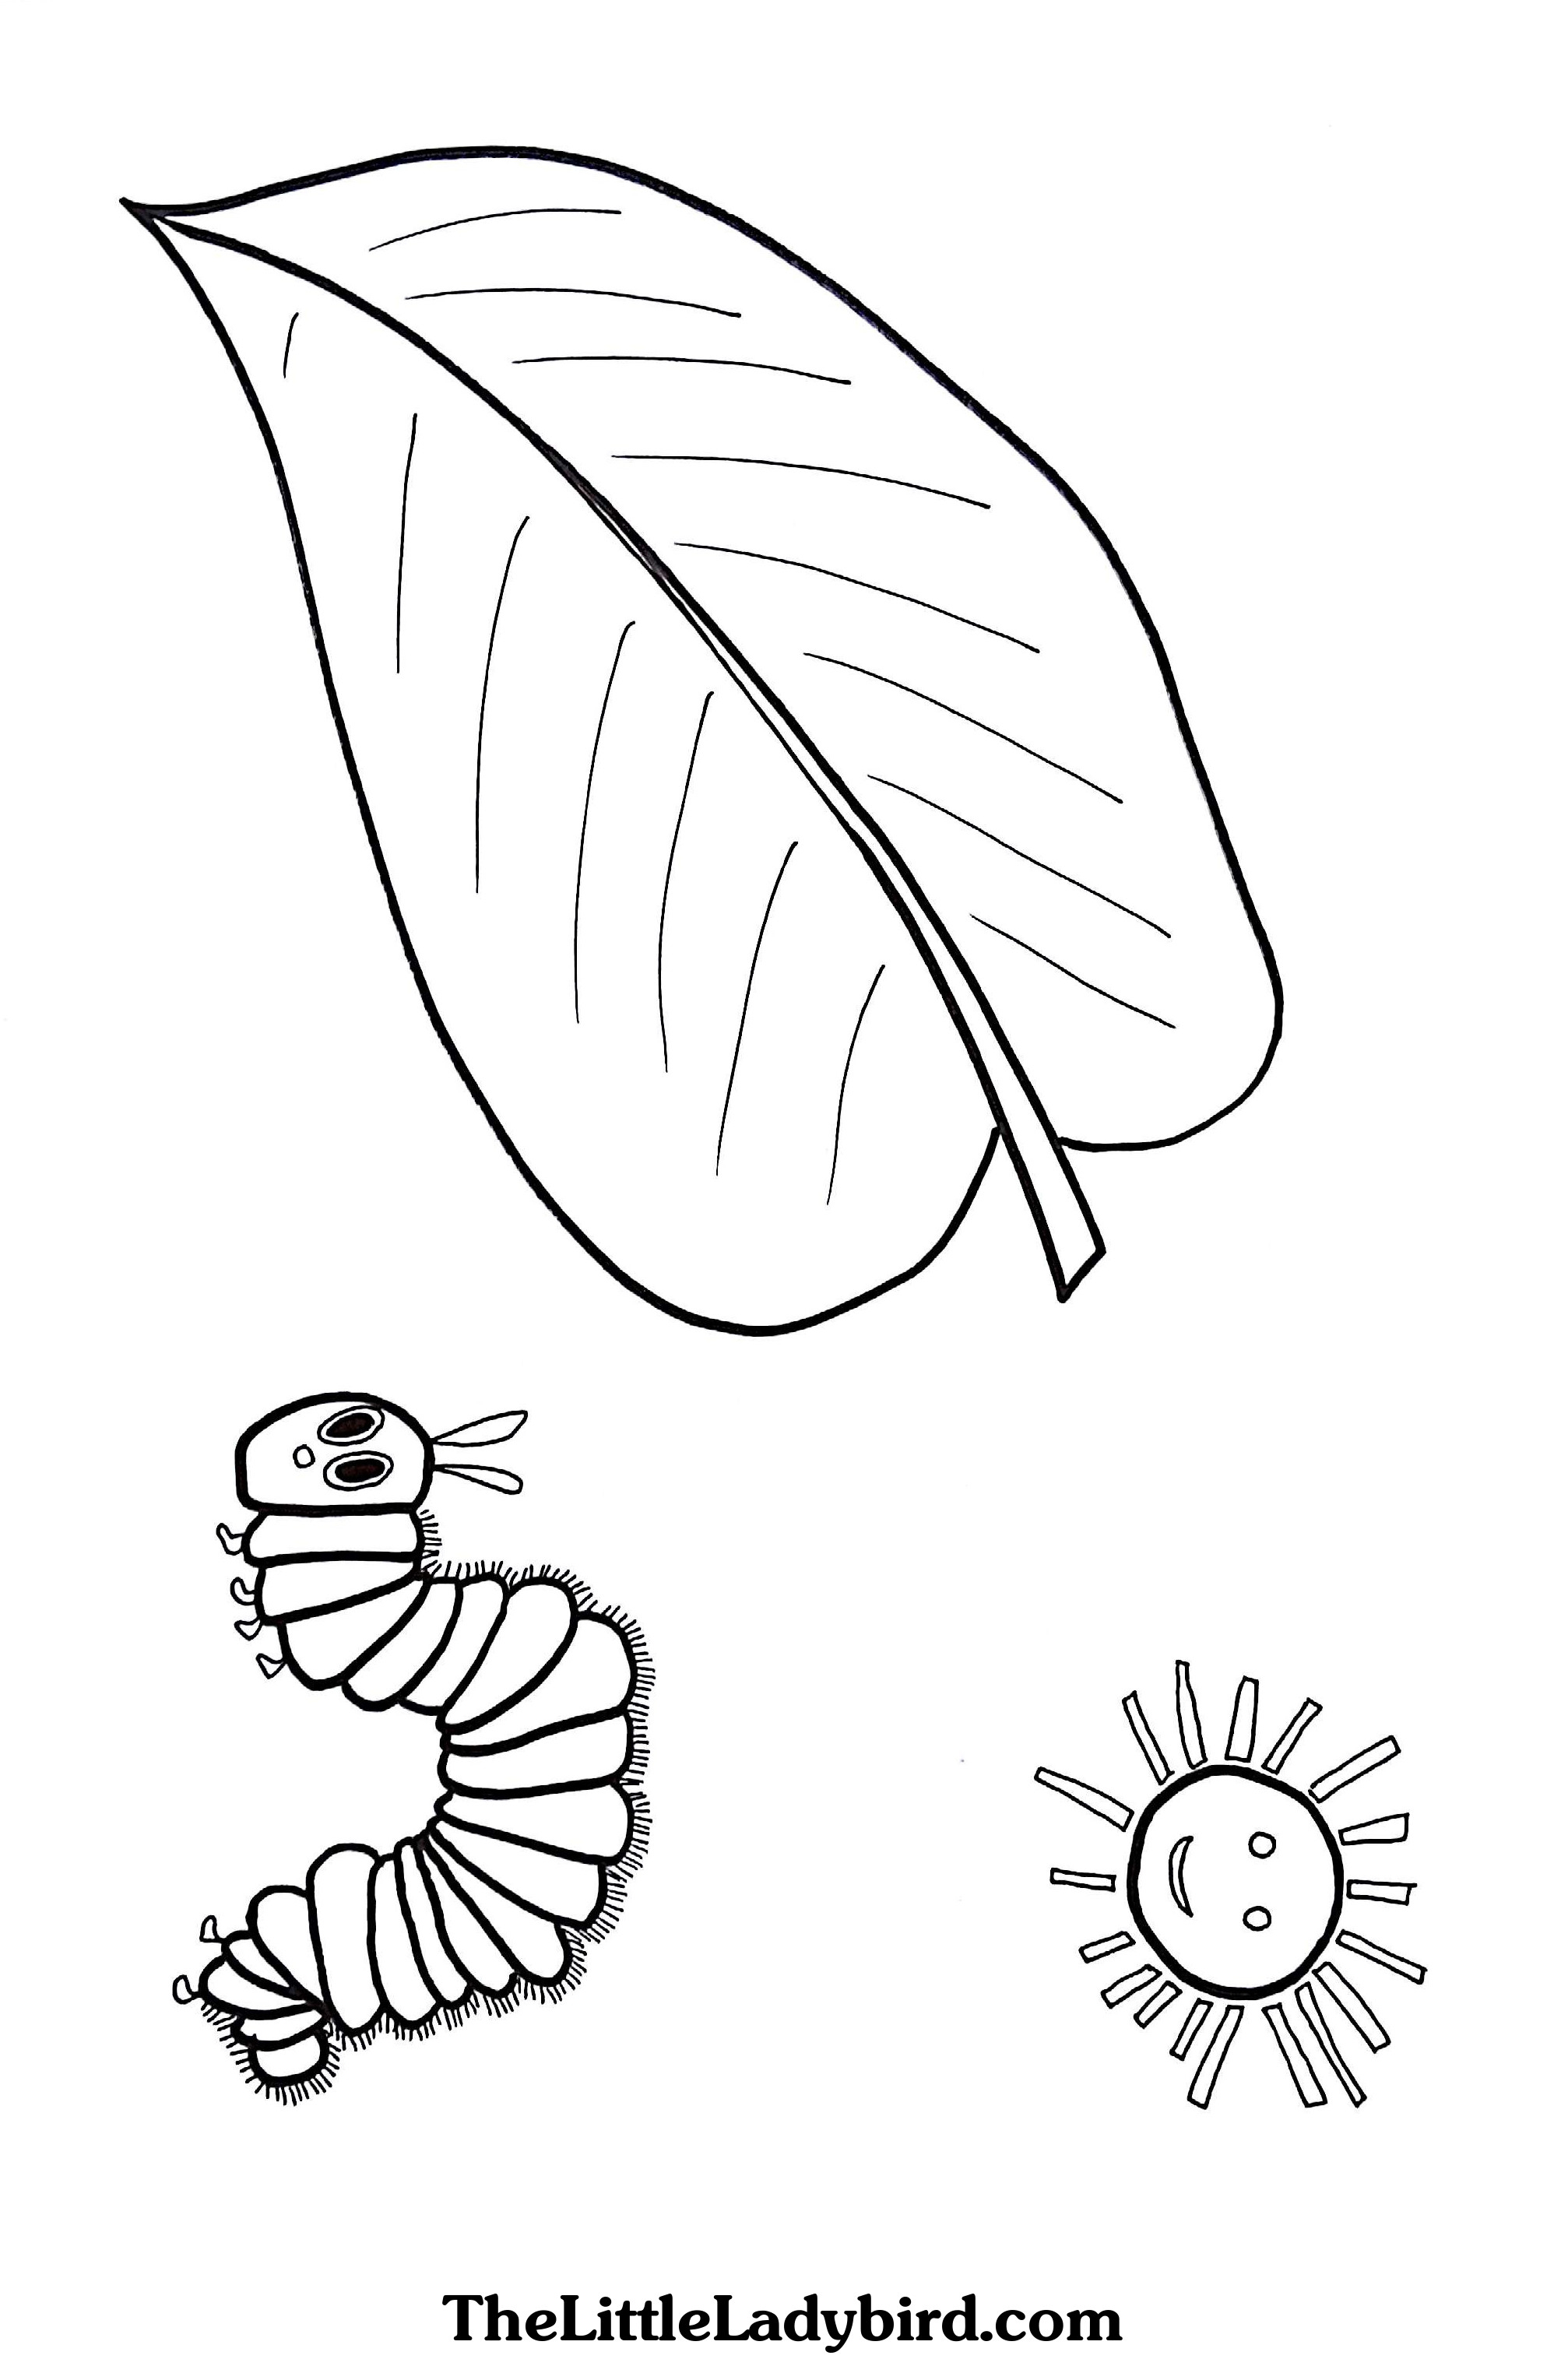 Hungry Caterpillar Coloring Pages Free The Very Hungry Caterpillar Coloring Page Thelittleladybird